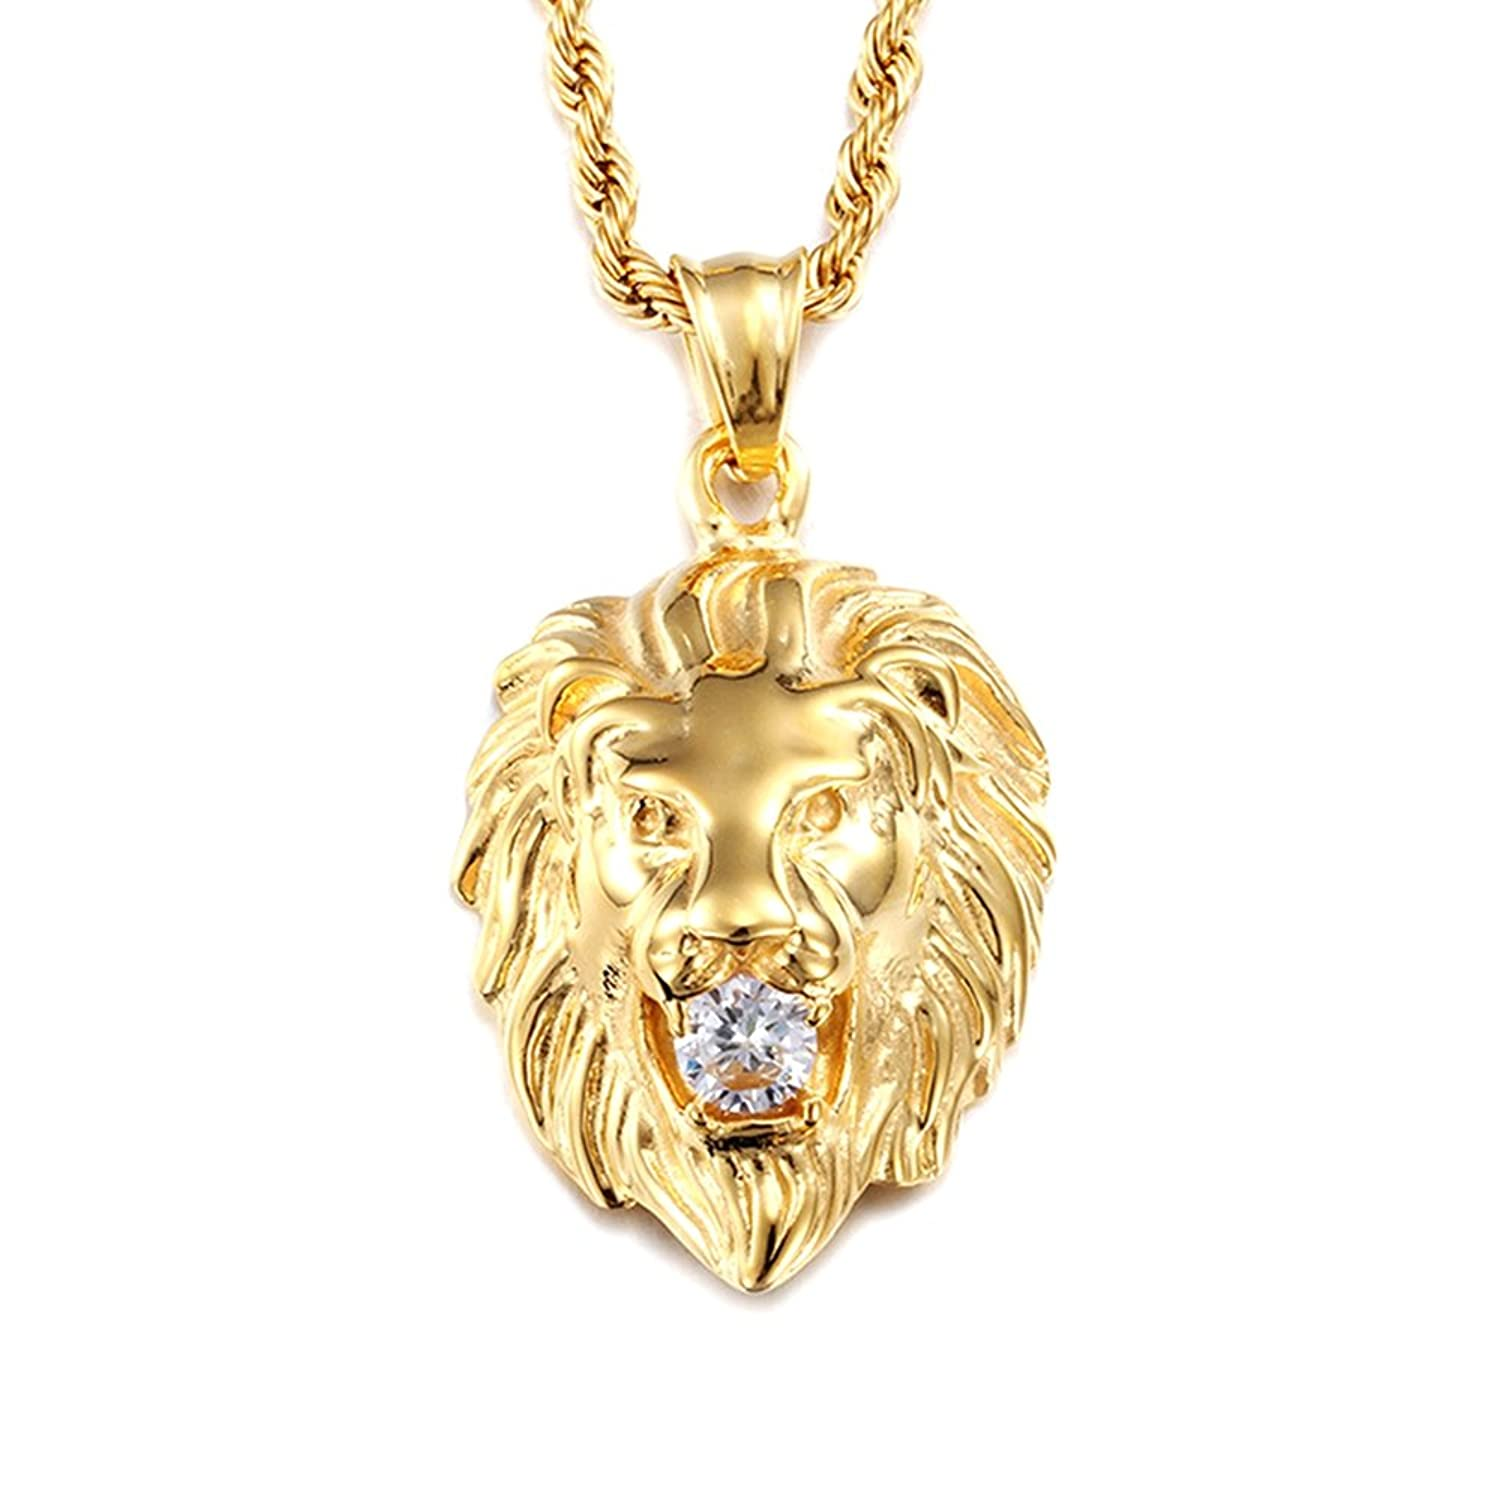 realreal leo products necklace yellow chain gold malachite jewelry pendant necklaces with enlarged the lion